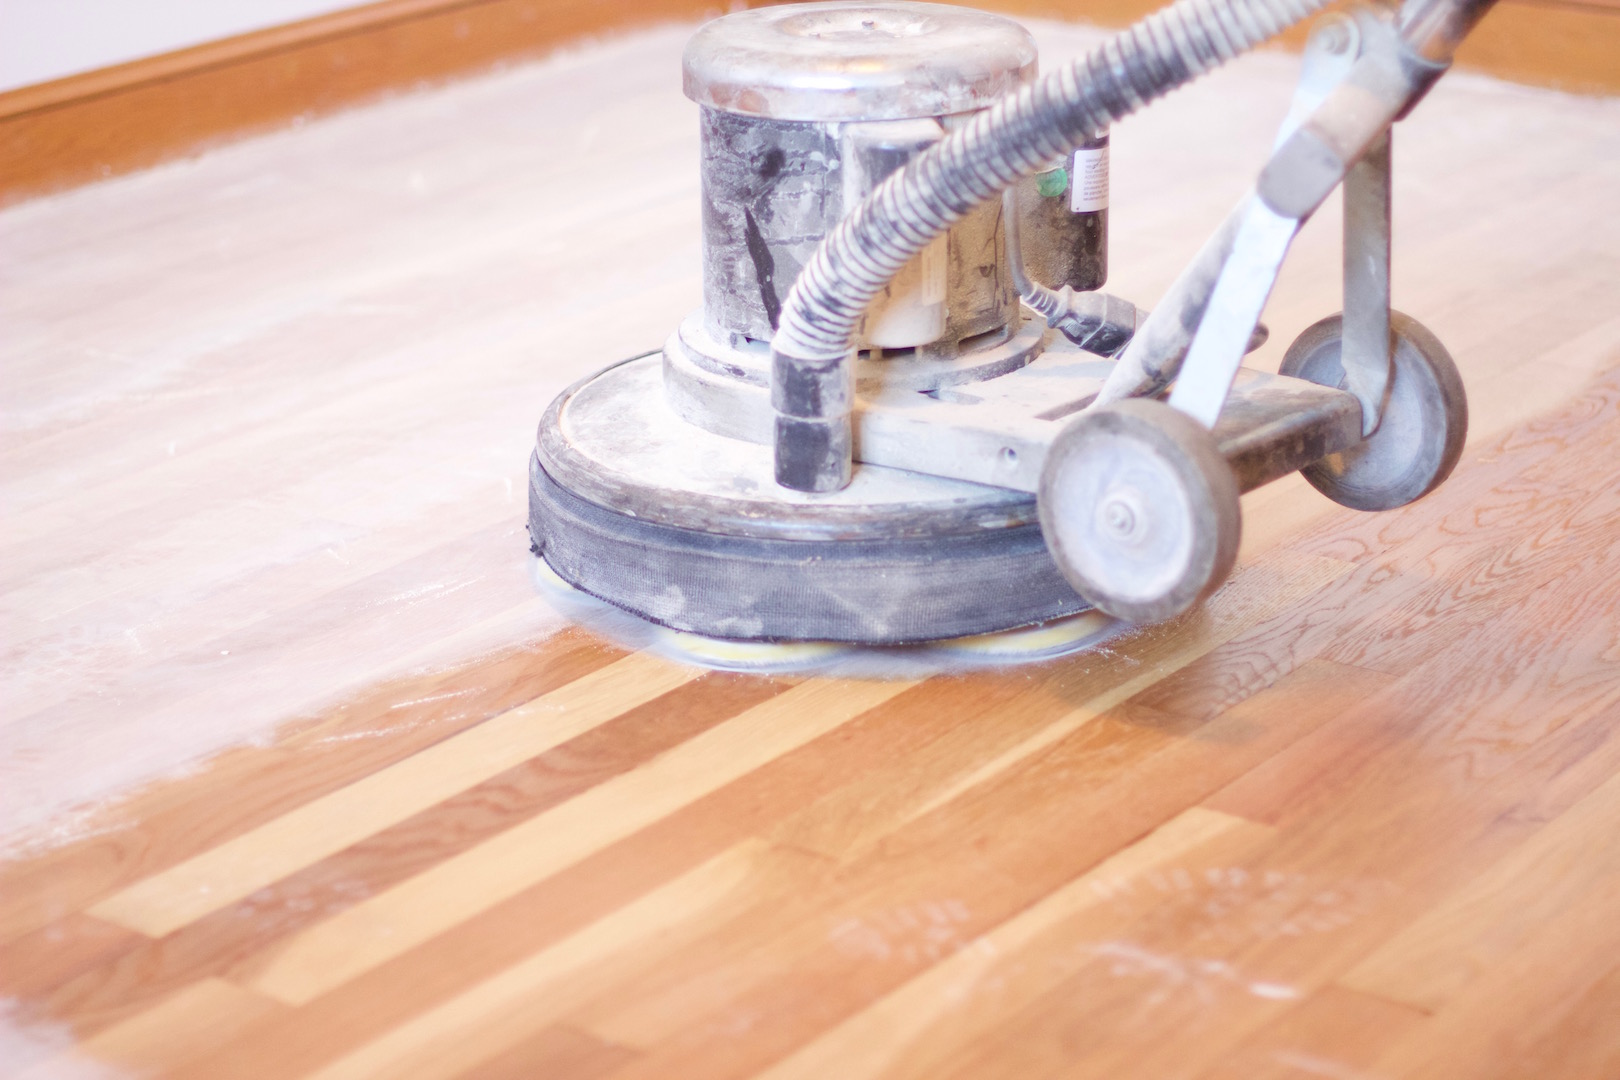 Gandswoodfloors hardwood floor buffer how to lynnbostonwellesley solutioingenieria Choice Image